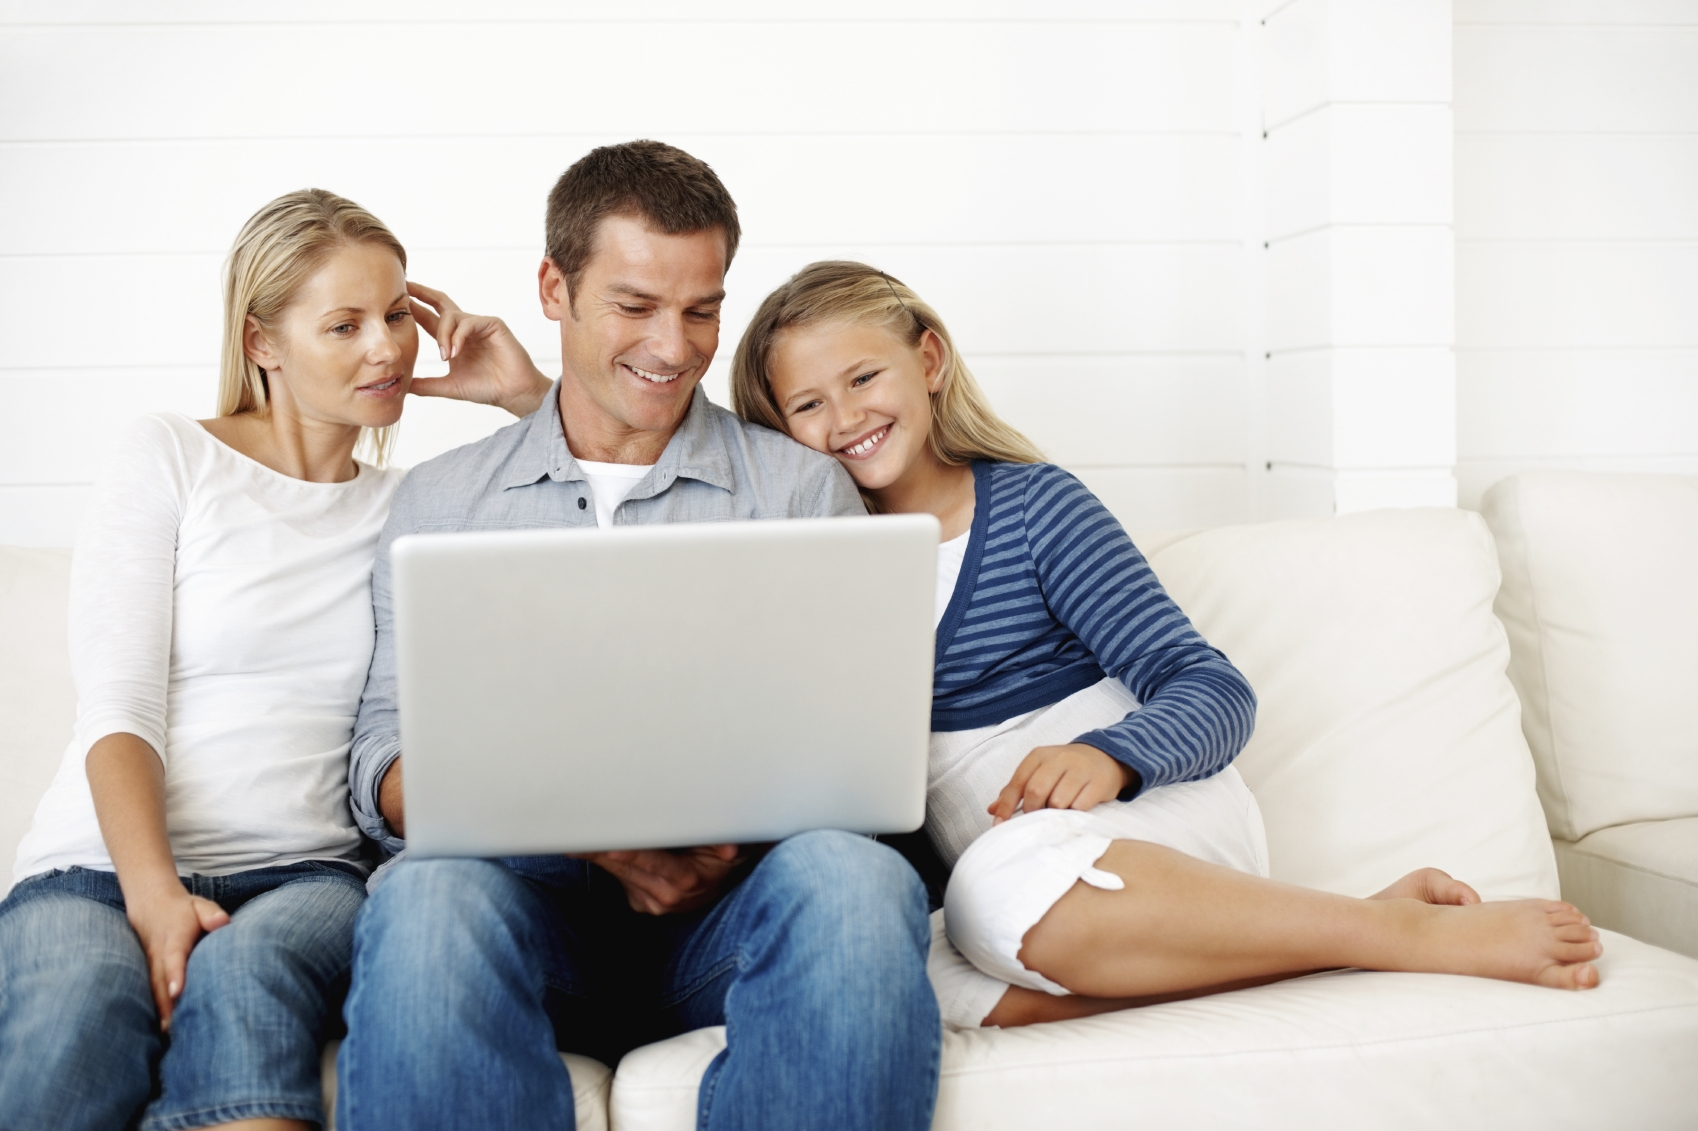 happy family at laptop